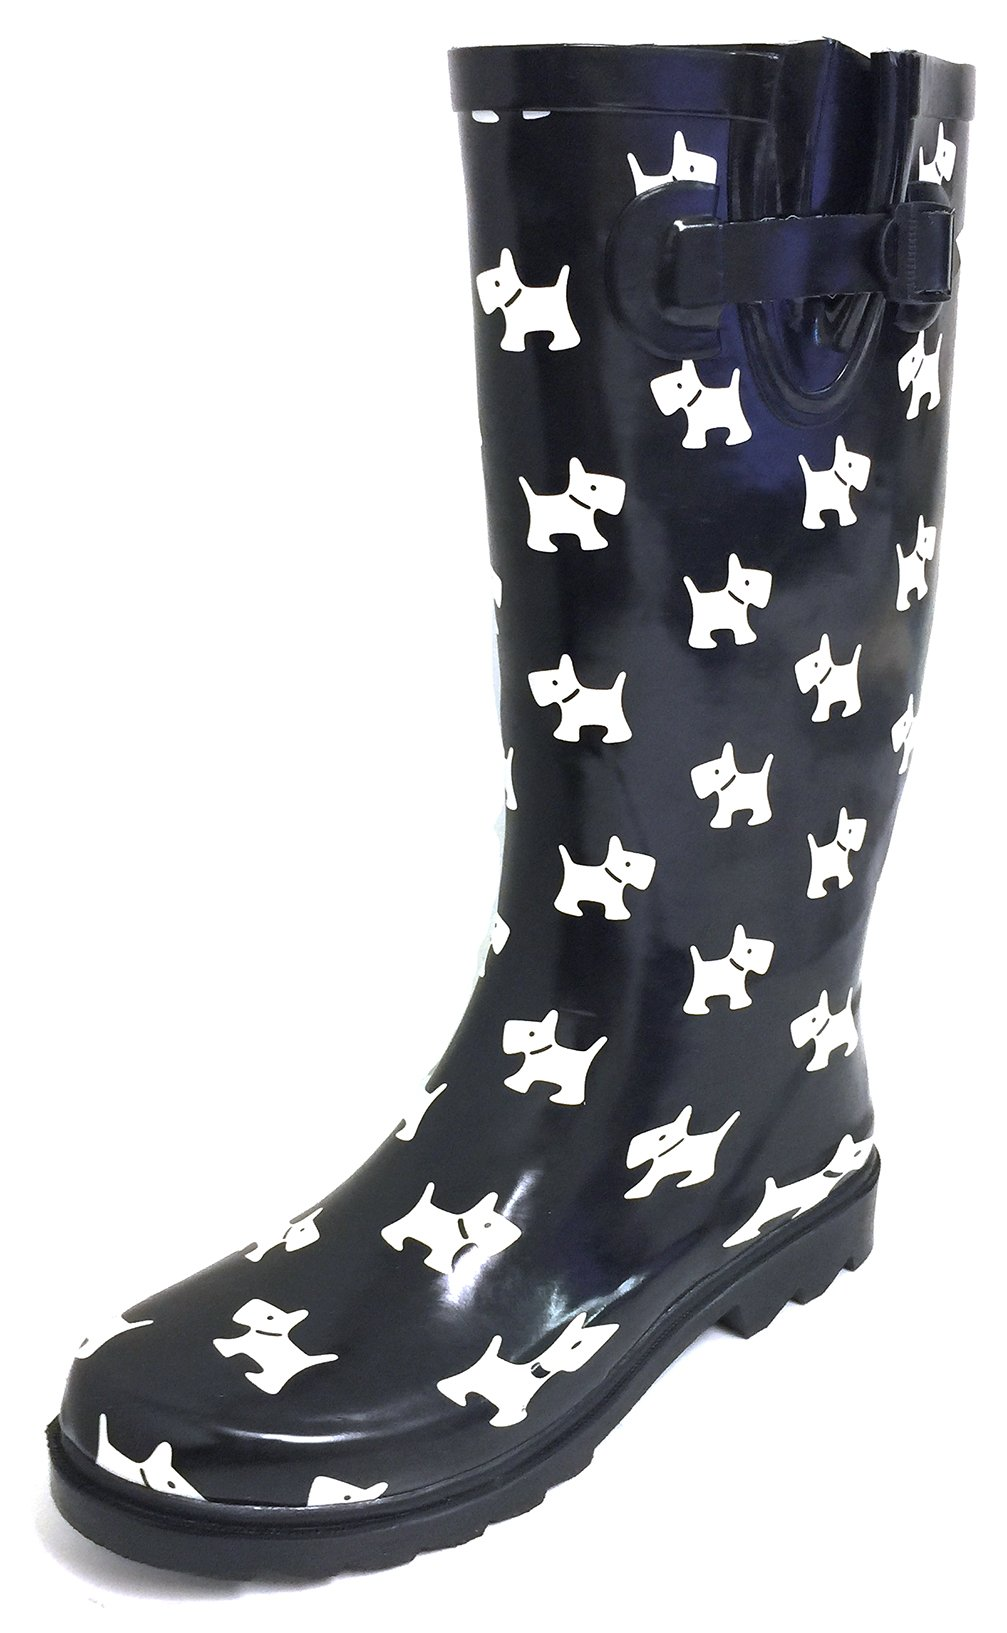 G4U Women's Rain Boots Multiple Styles Color Mid Calf Wellies Buckle Fashion Rubber Knee High Snow Shoes (8 B(M) US, Black/White Puppies)